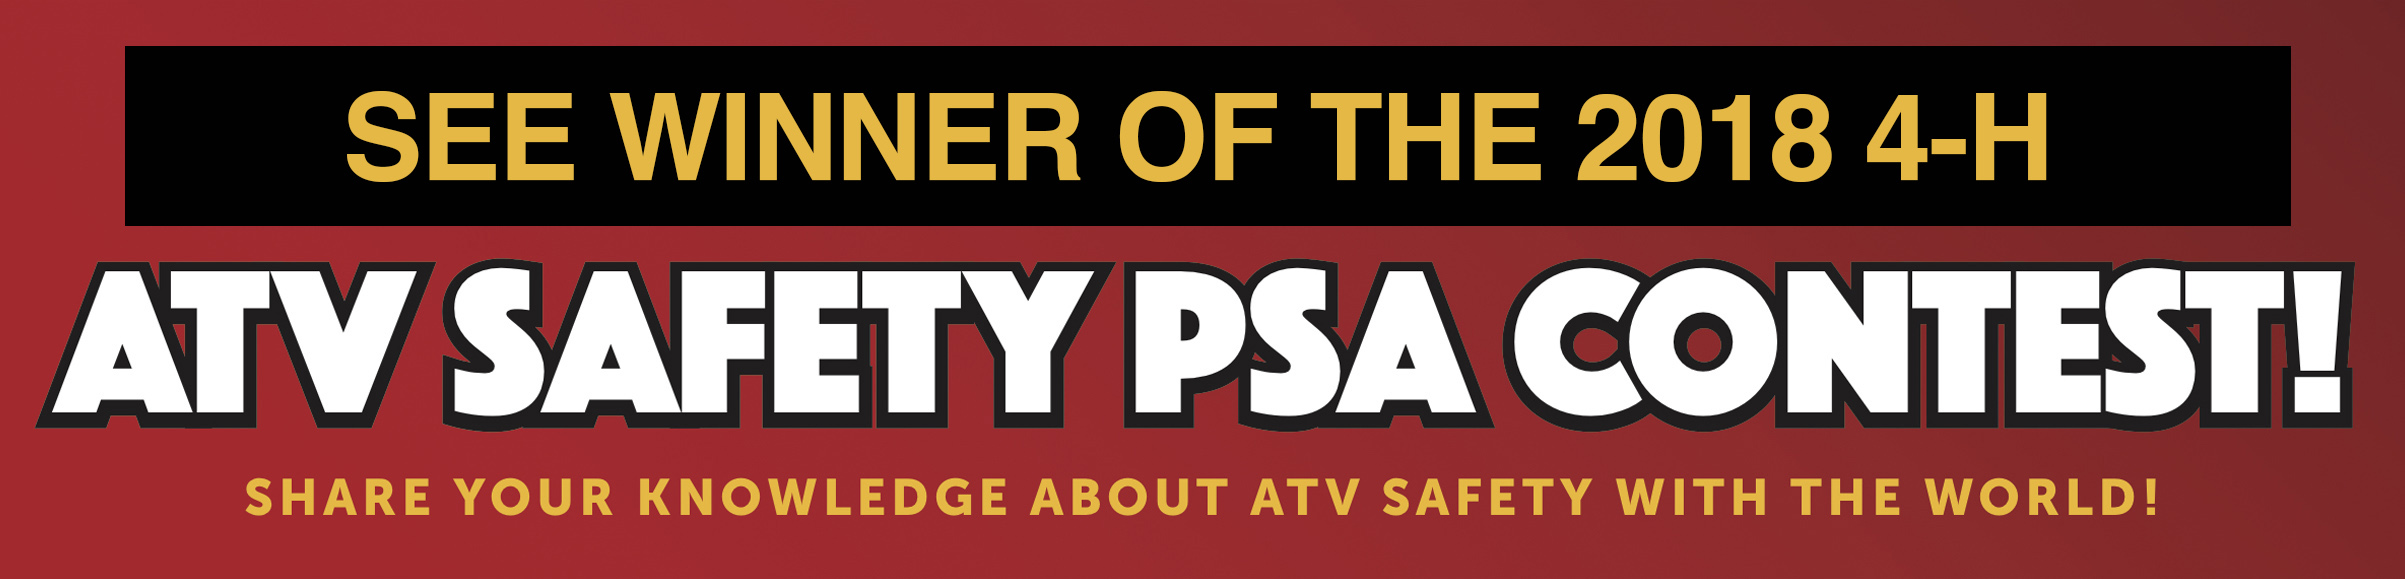 See the Winner of the 2018 4-H ATV Safety PSA Contest